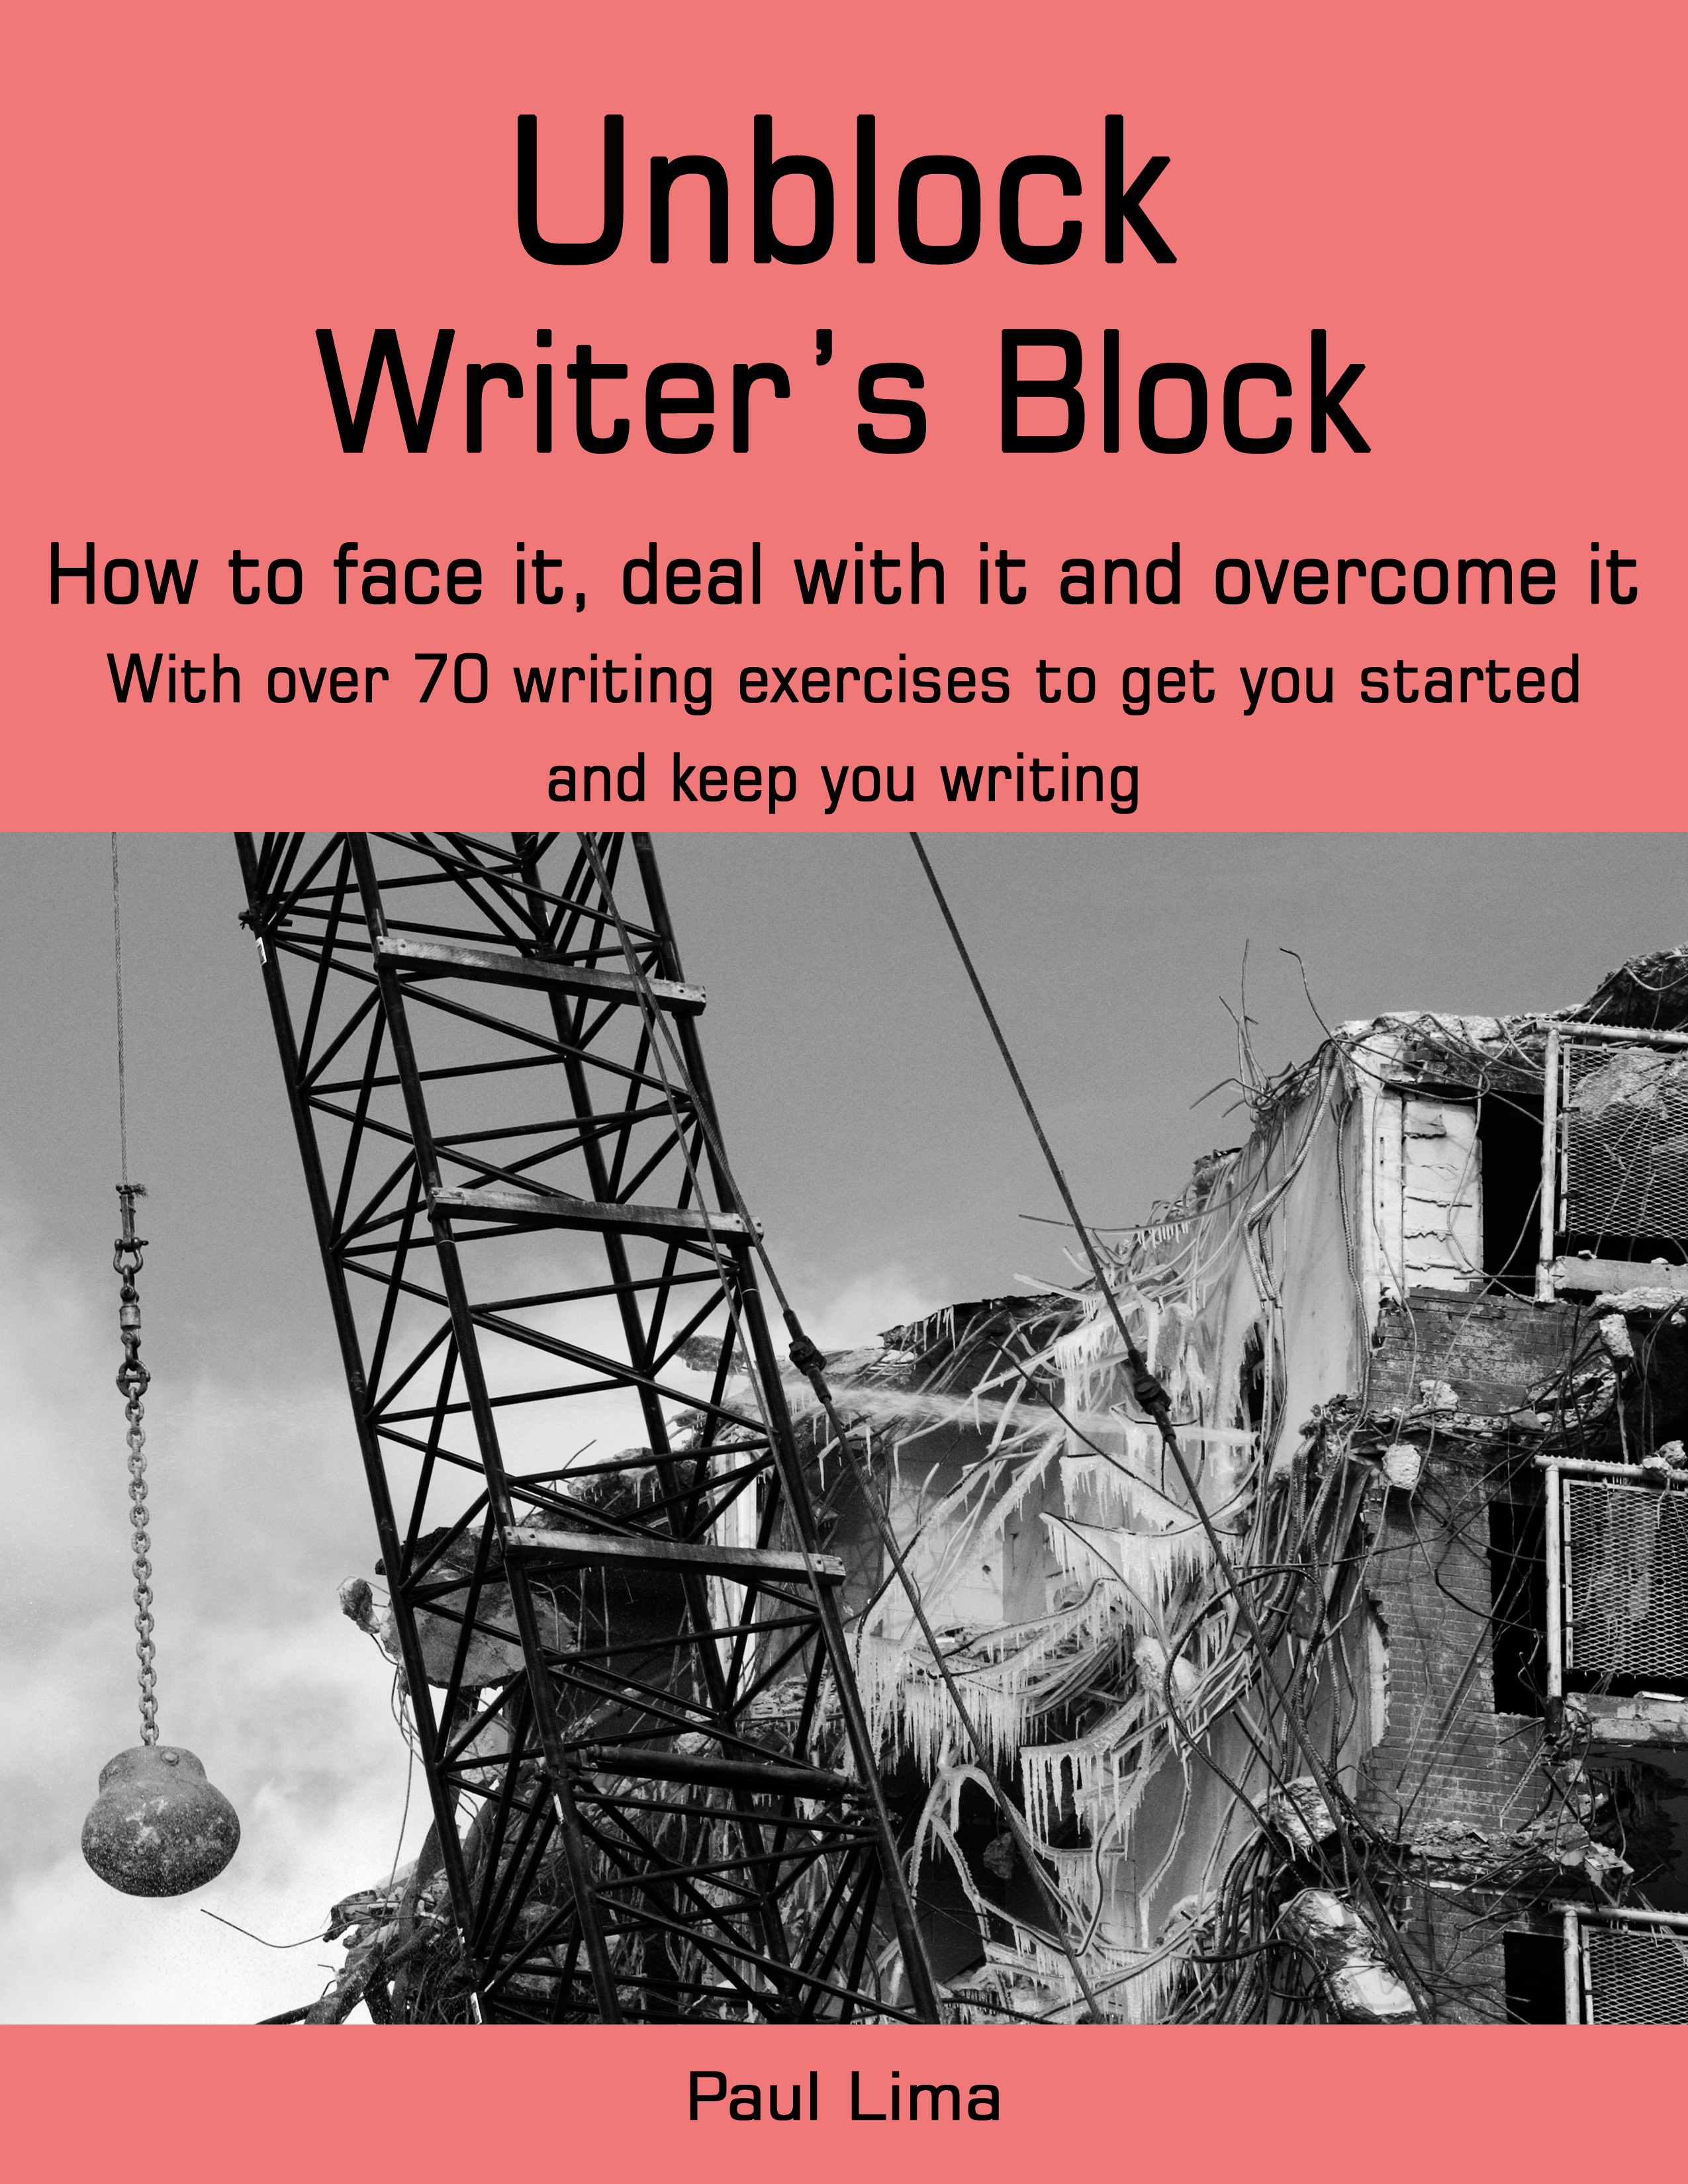 Unblock Writer's Block